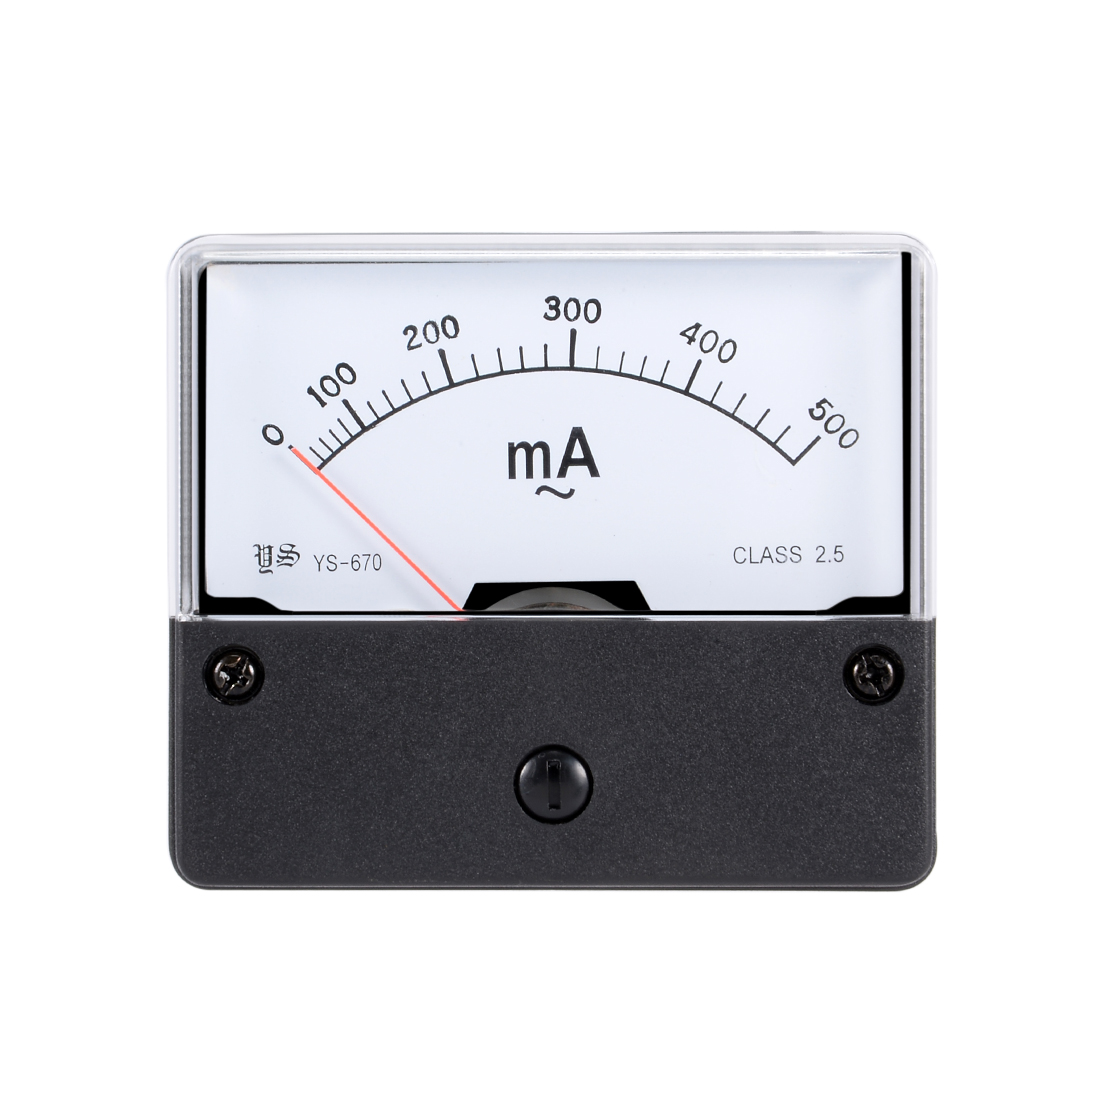 Plastic Housing AC 500mA Analog Ampere Panel Meter Ammeter YS-670